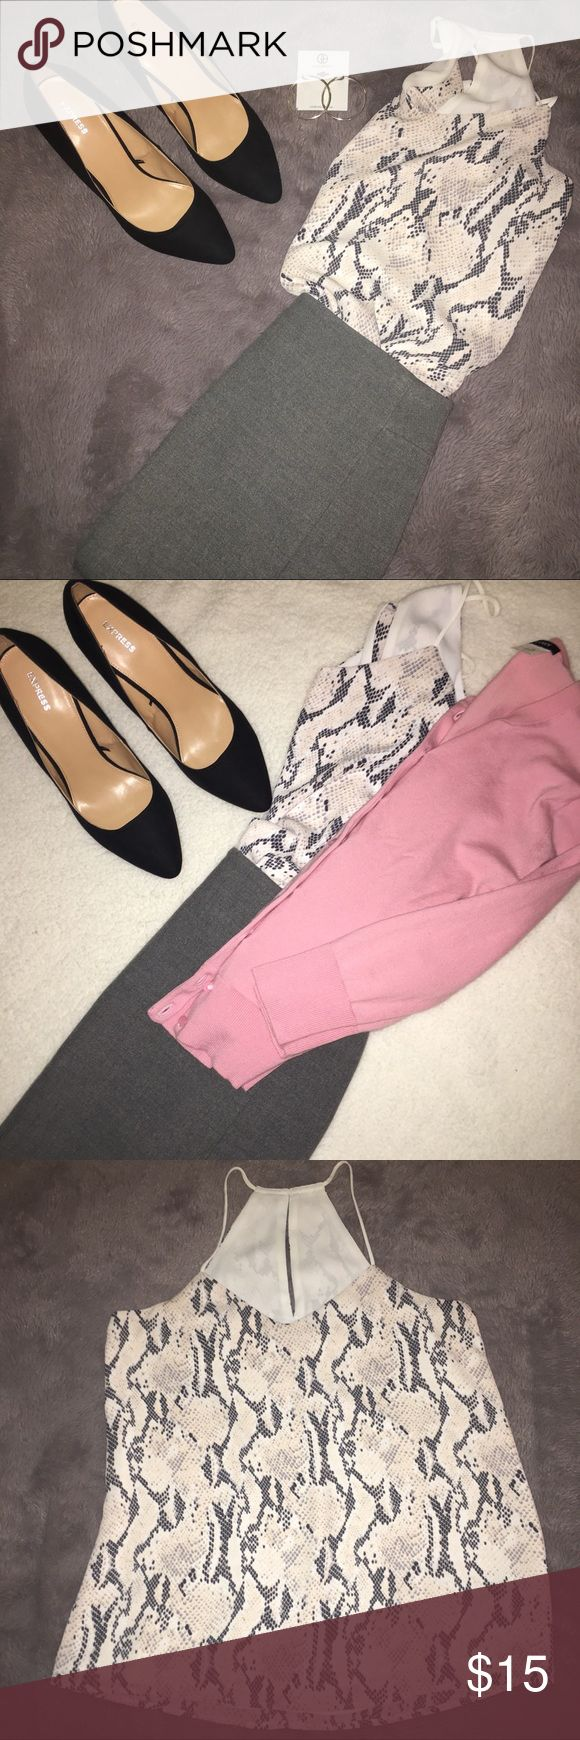 Express Gray and Pink Snakeskin Tank Express Gray and Pink Snakeskin Tank. Size Small. Gently used. Pairs great with a gray skirt, pink sweater for work, and black pumps for the office!! All items pictured are also for sale in my closet😊 Express Tops Blouses